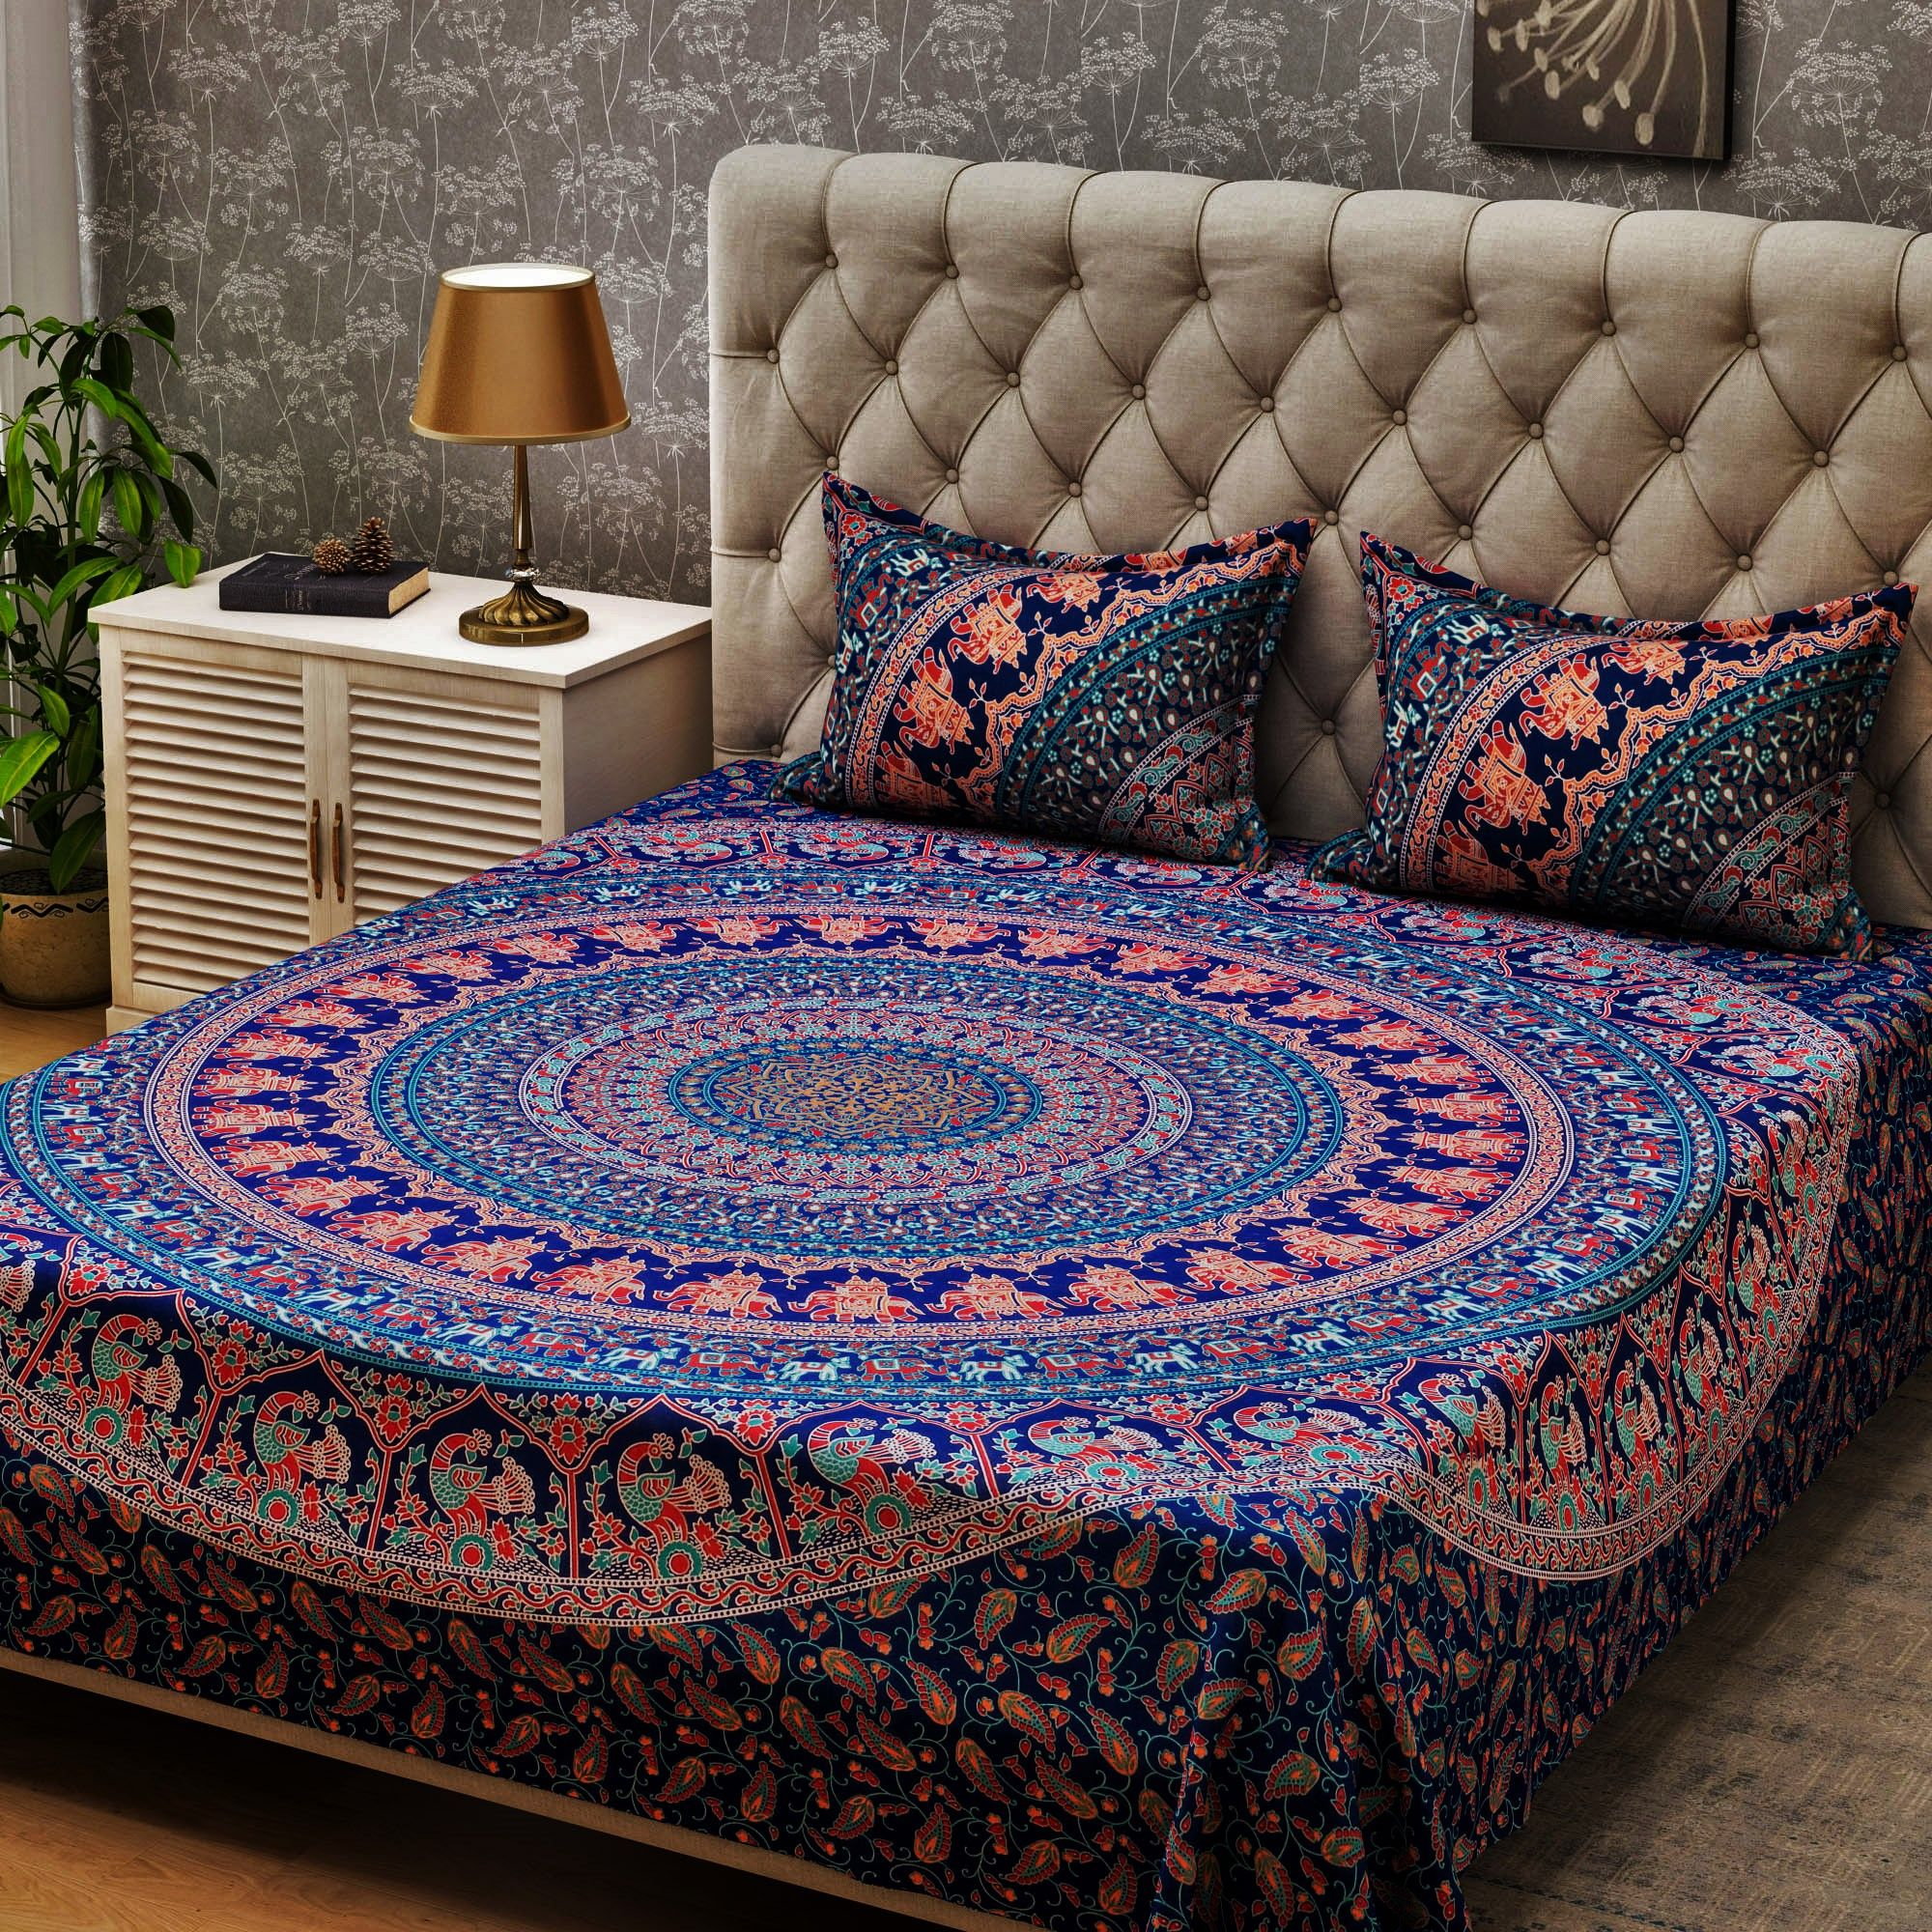 Beautiful Navy Duvet Cover Queen Mandala Tapestry Boho Chic Decor